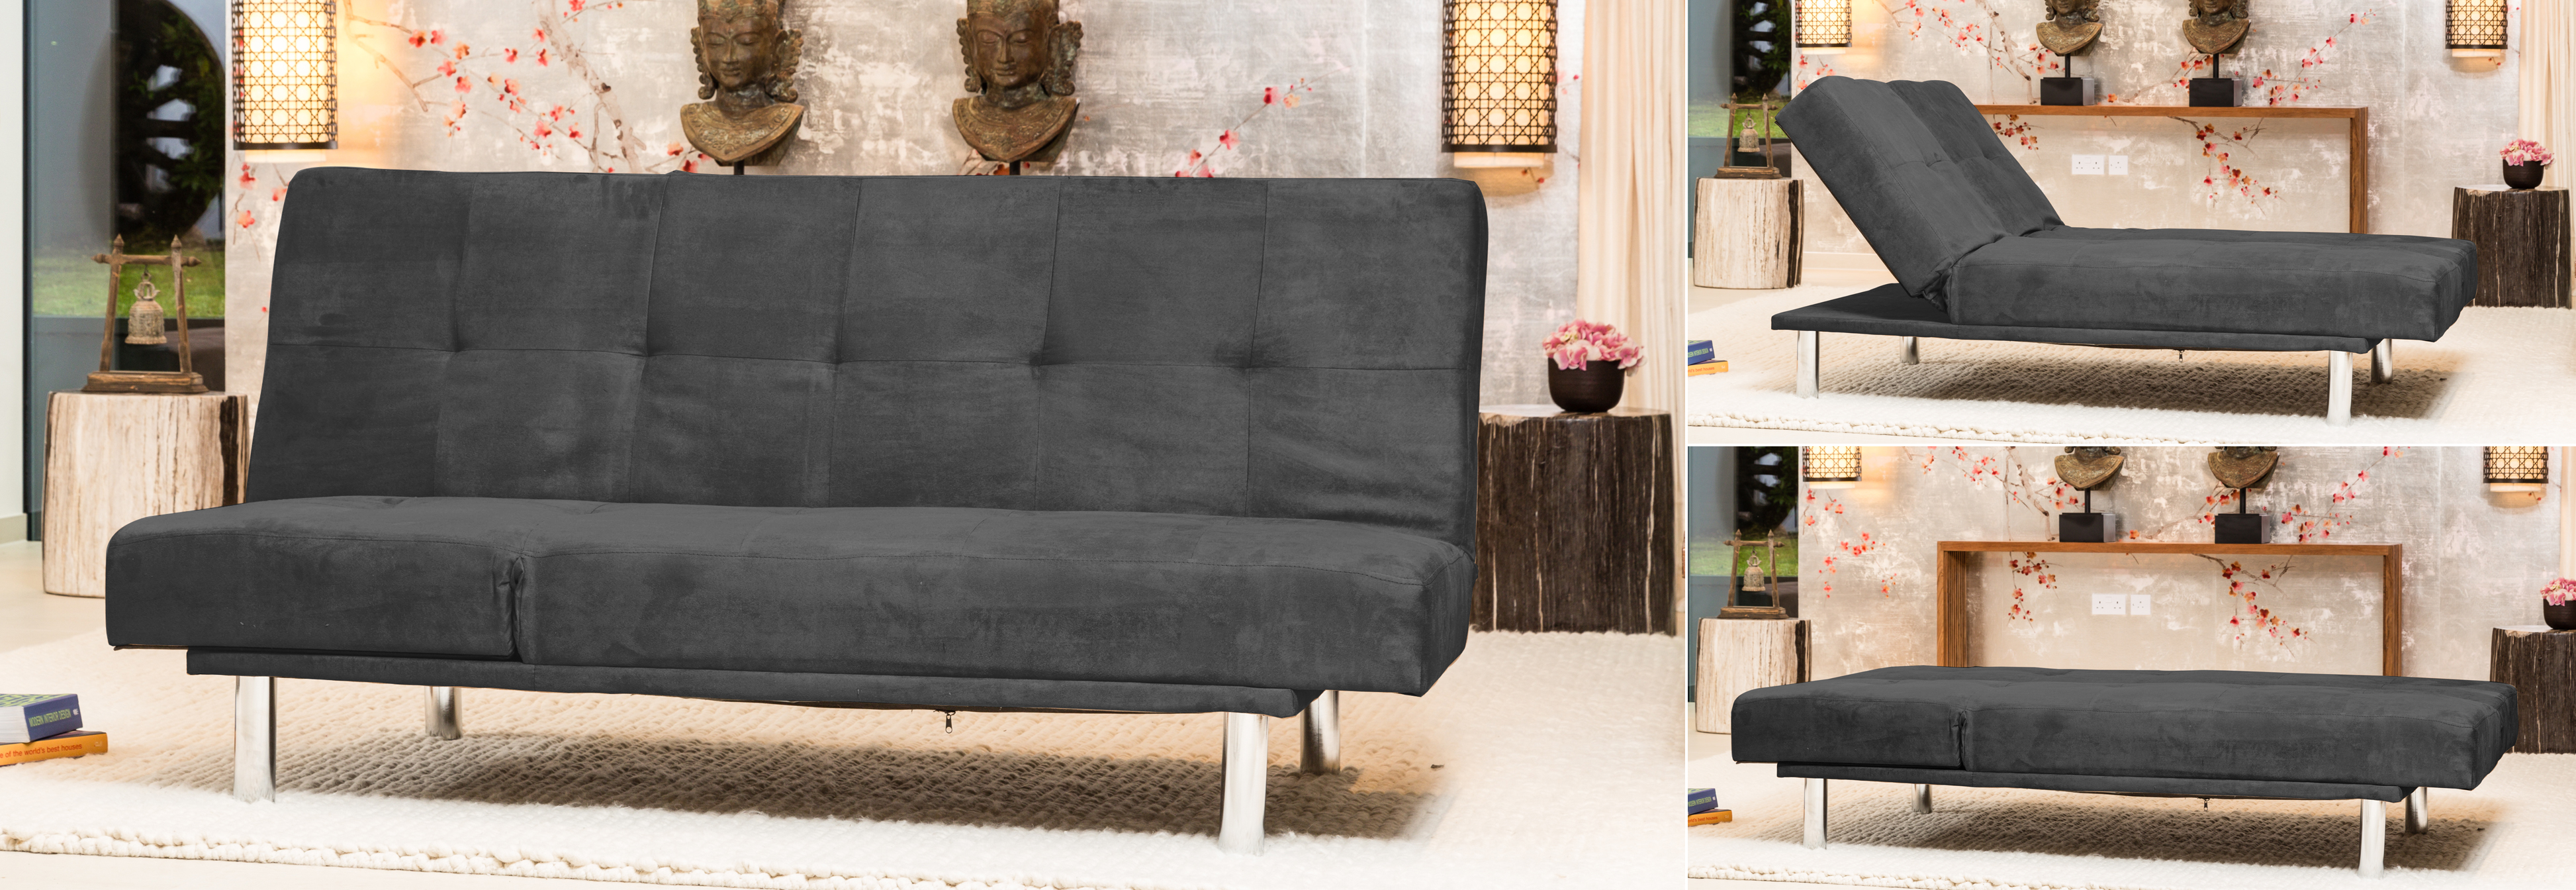 Glendene Reclining Sofabed charcoal